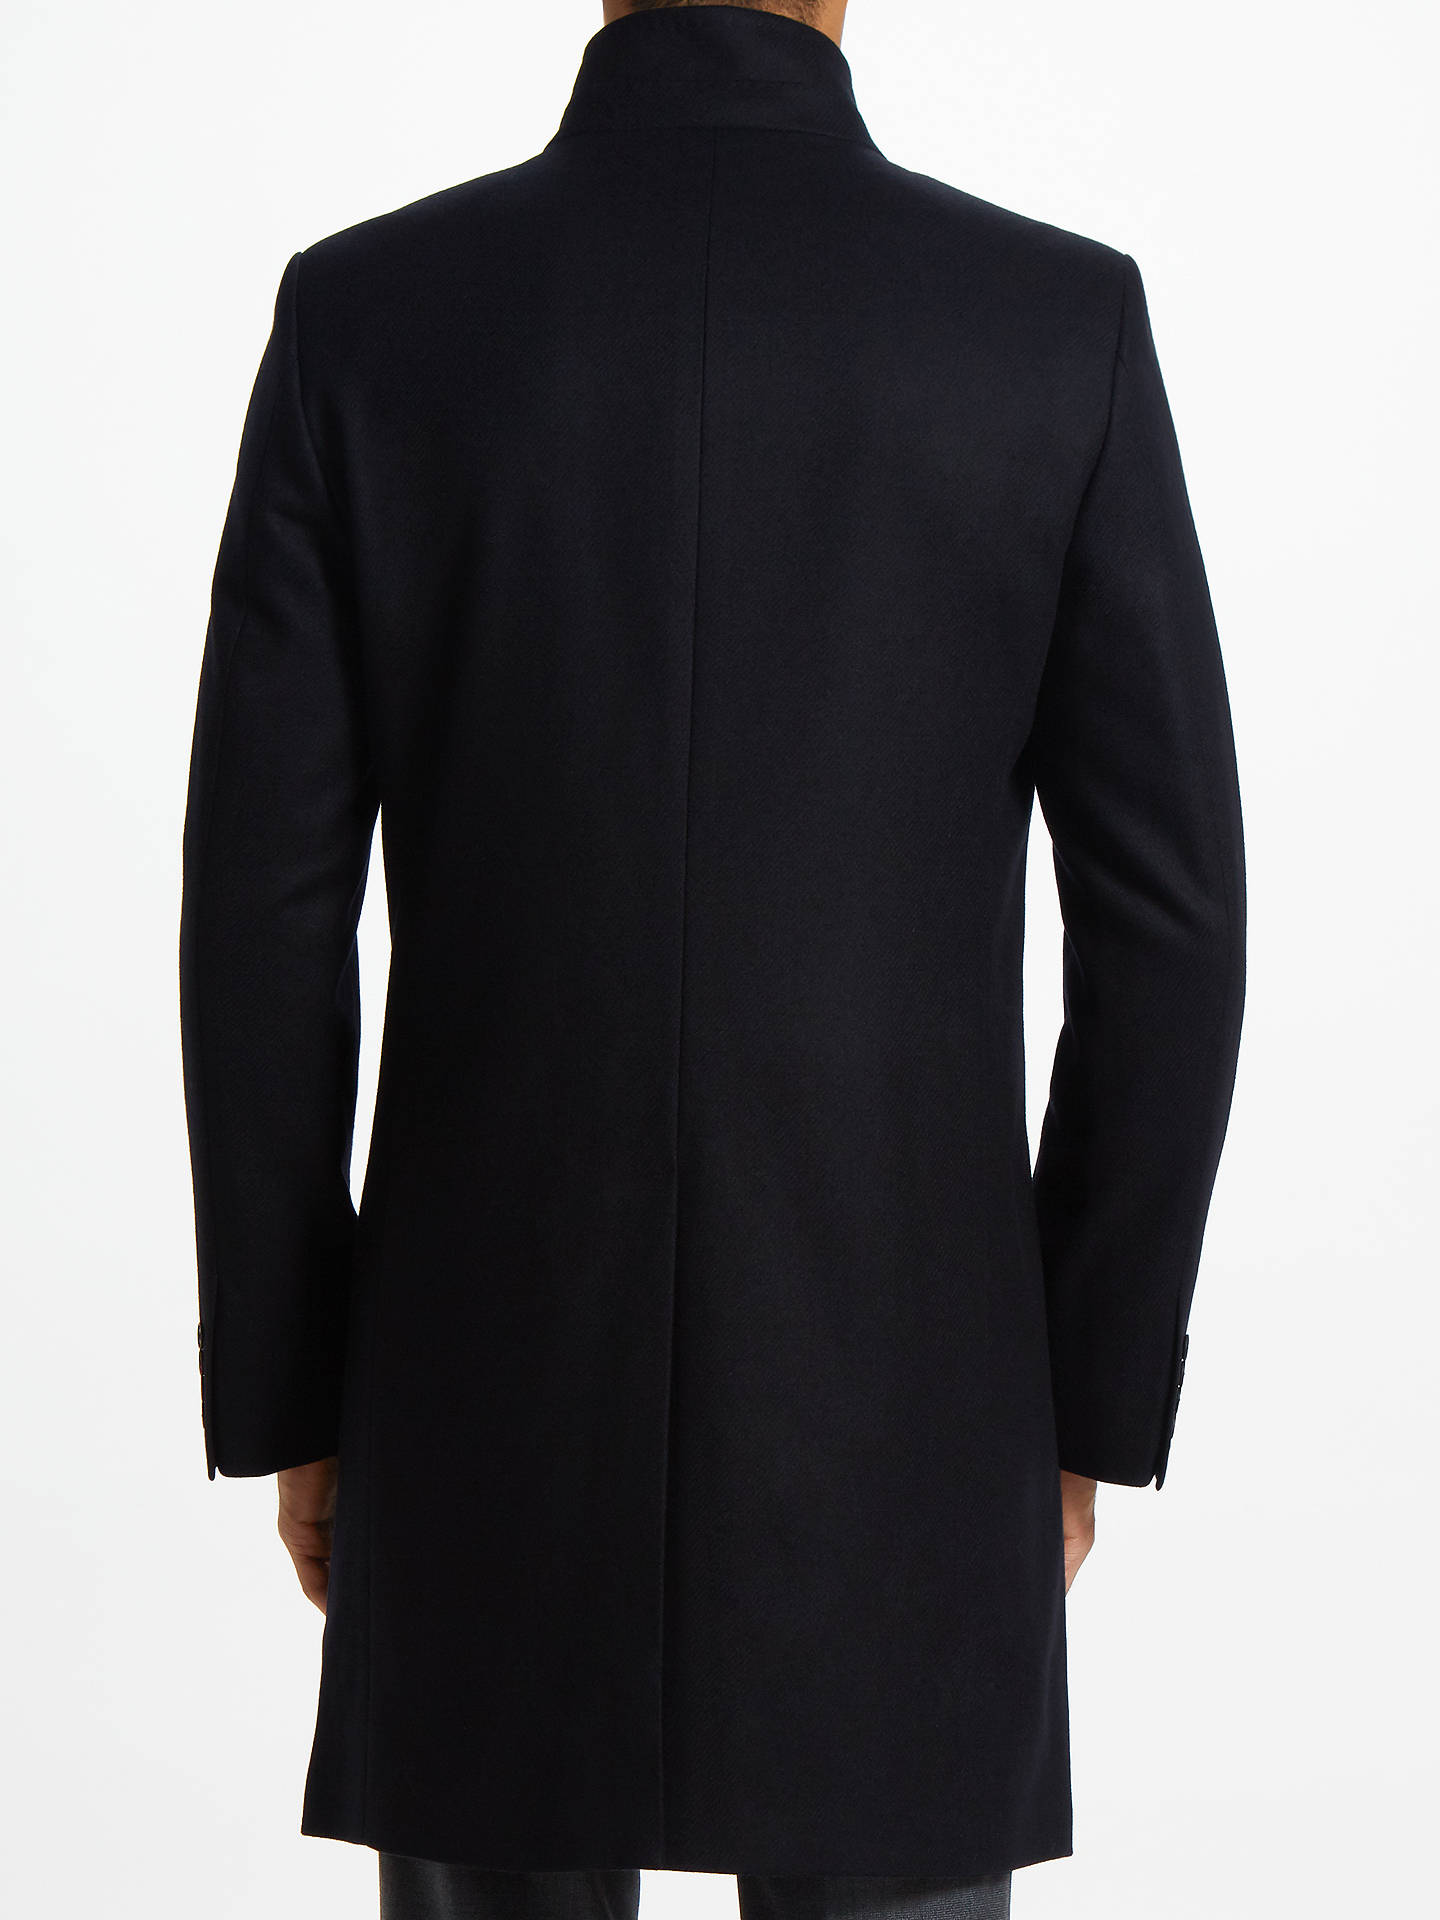 Buy John Lewis & Partners Italian Funnel Neck Overcoat, Navy, 36R Online at johnlewis.com